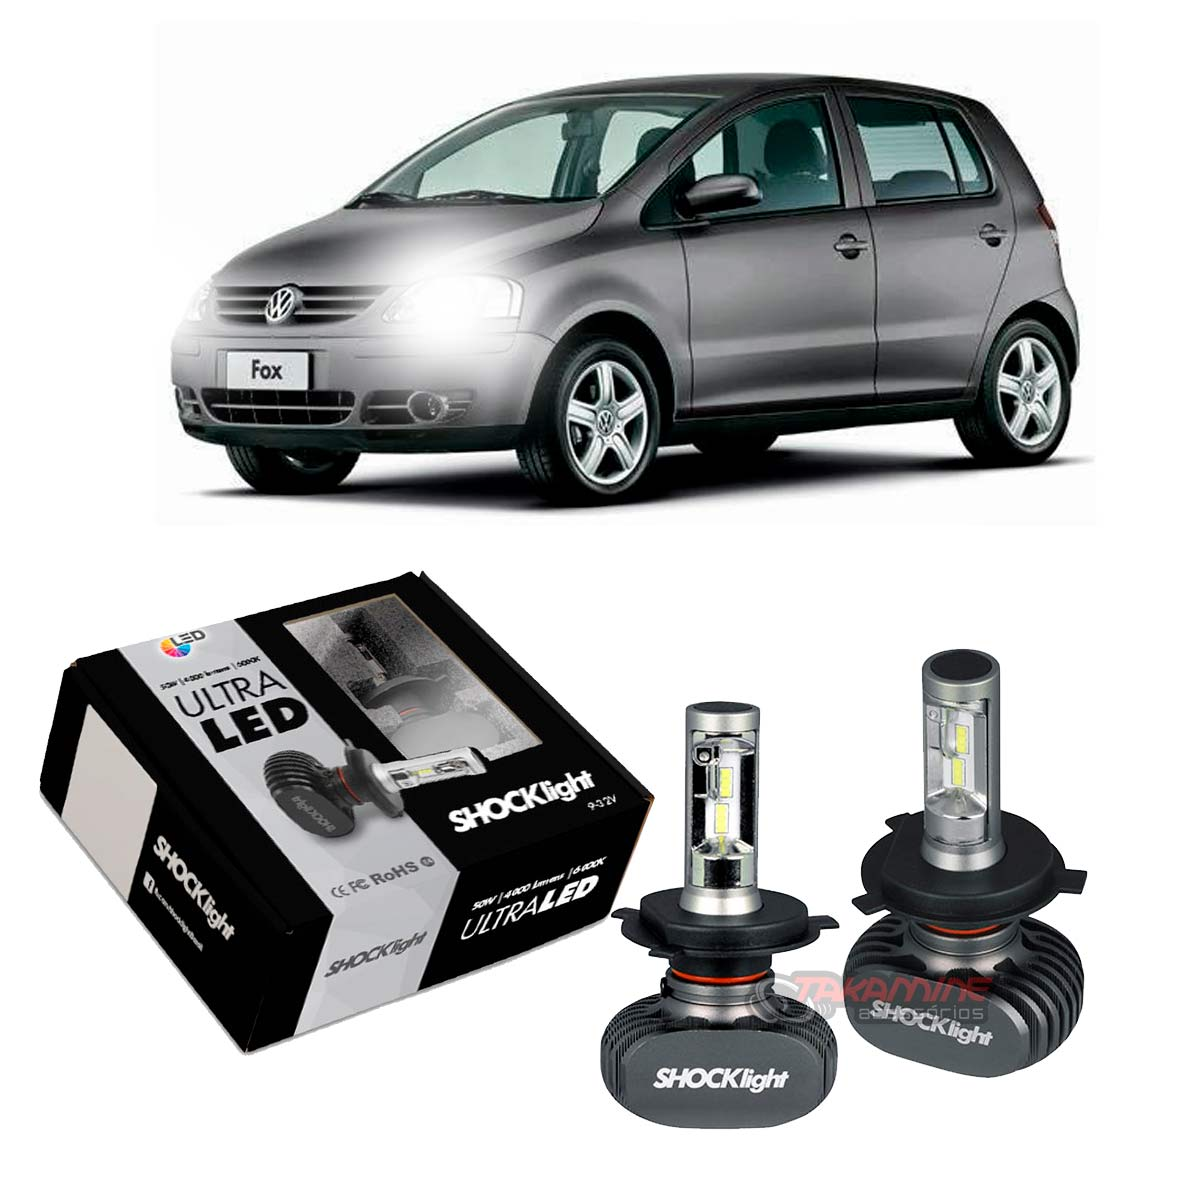 Kit Ultra LED Fox 2003 2004 2005 2006 2007 2008 2009 tipo xenon farol alto e baixo H4 50W